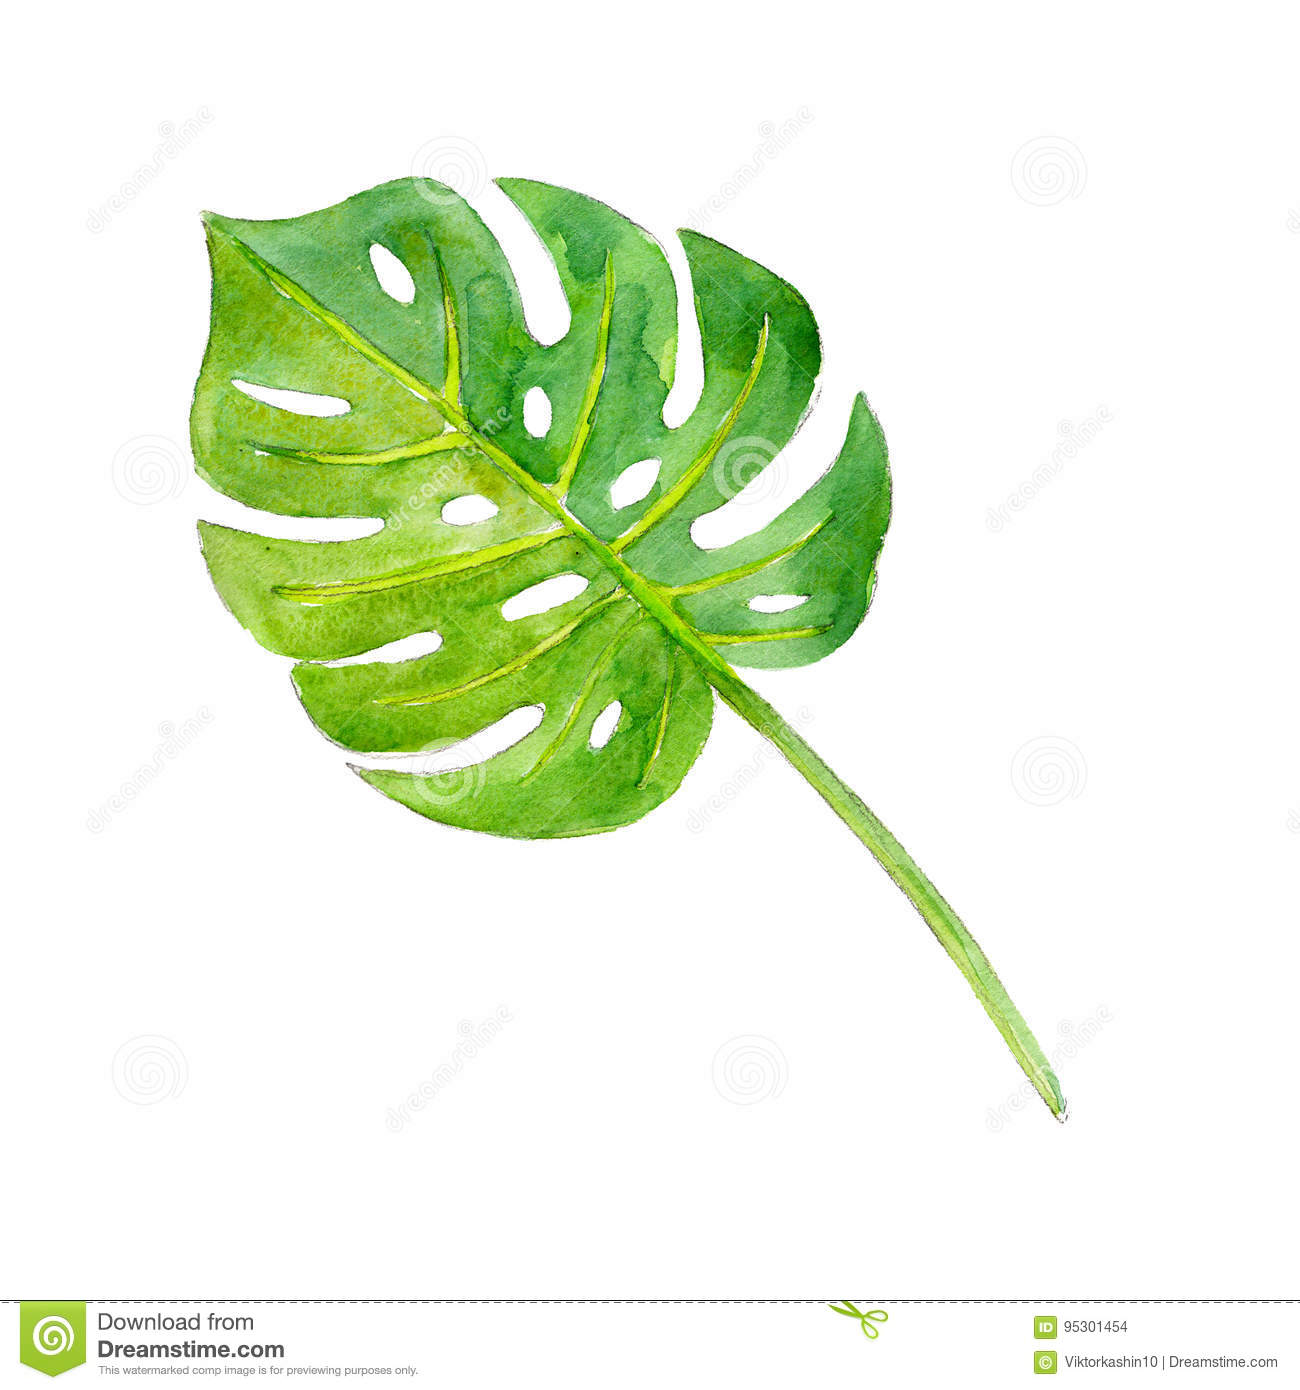 Watercolor illustration of leaf philodendron, isolate.